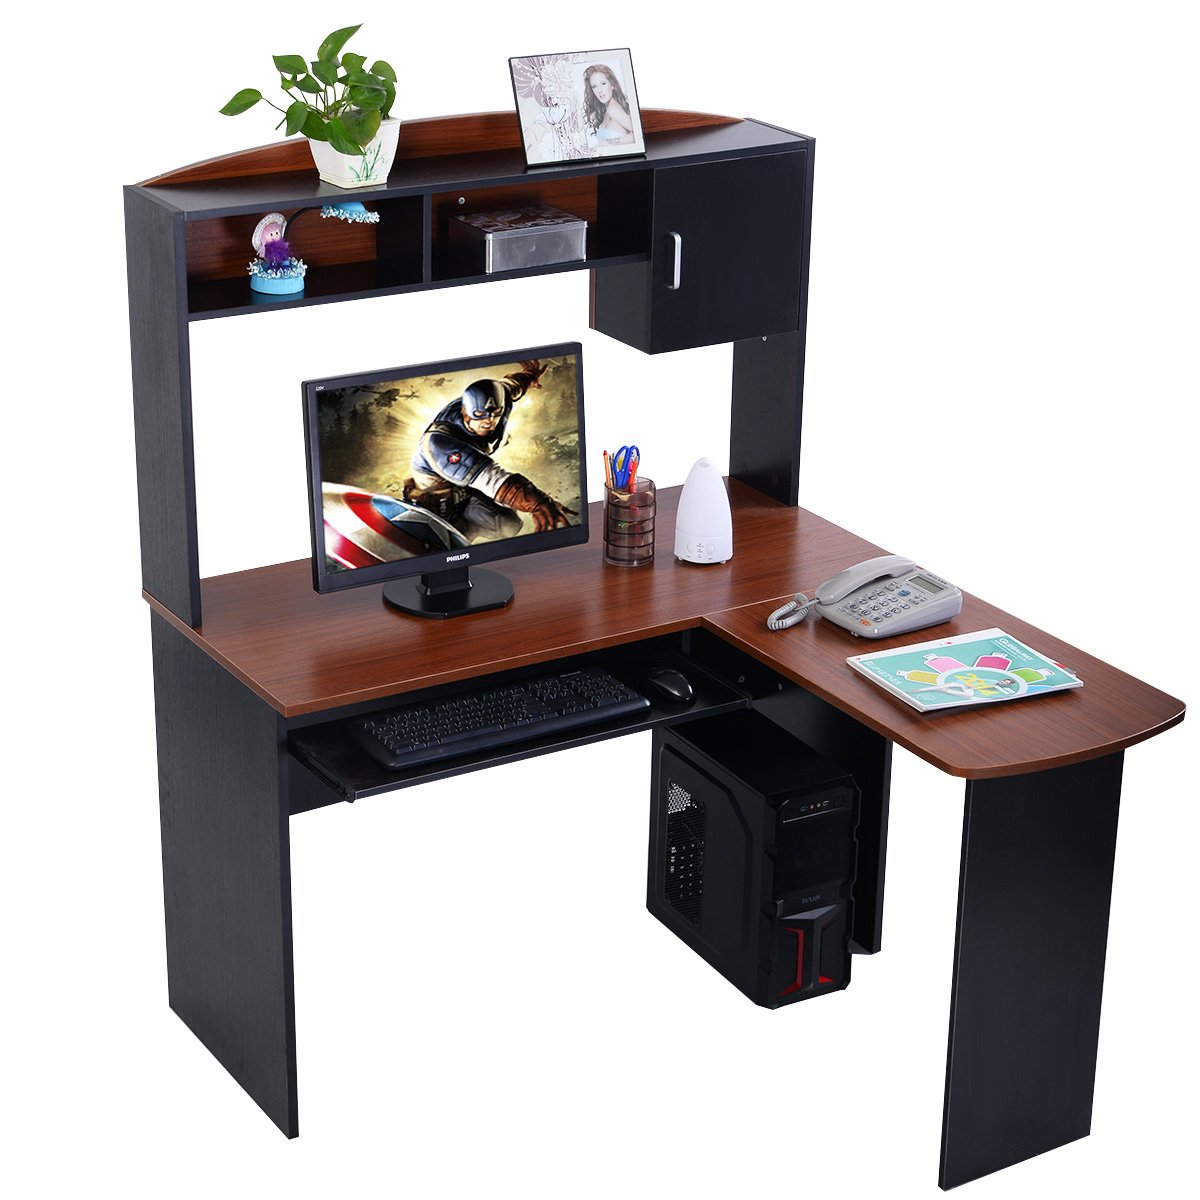 Tangkula L Shaped Desk Corner Home Office Computer Desk with Hutch (Black & Brown)